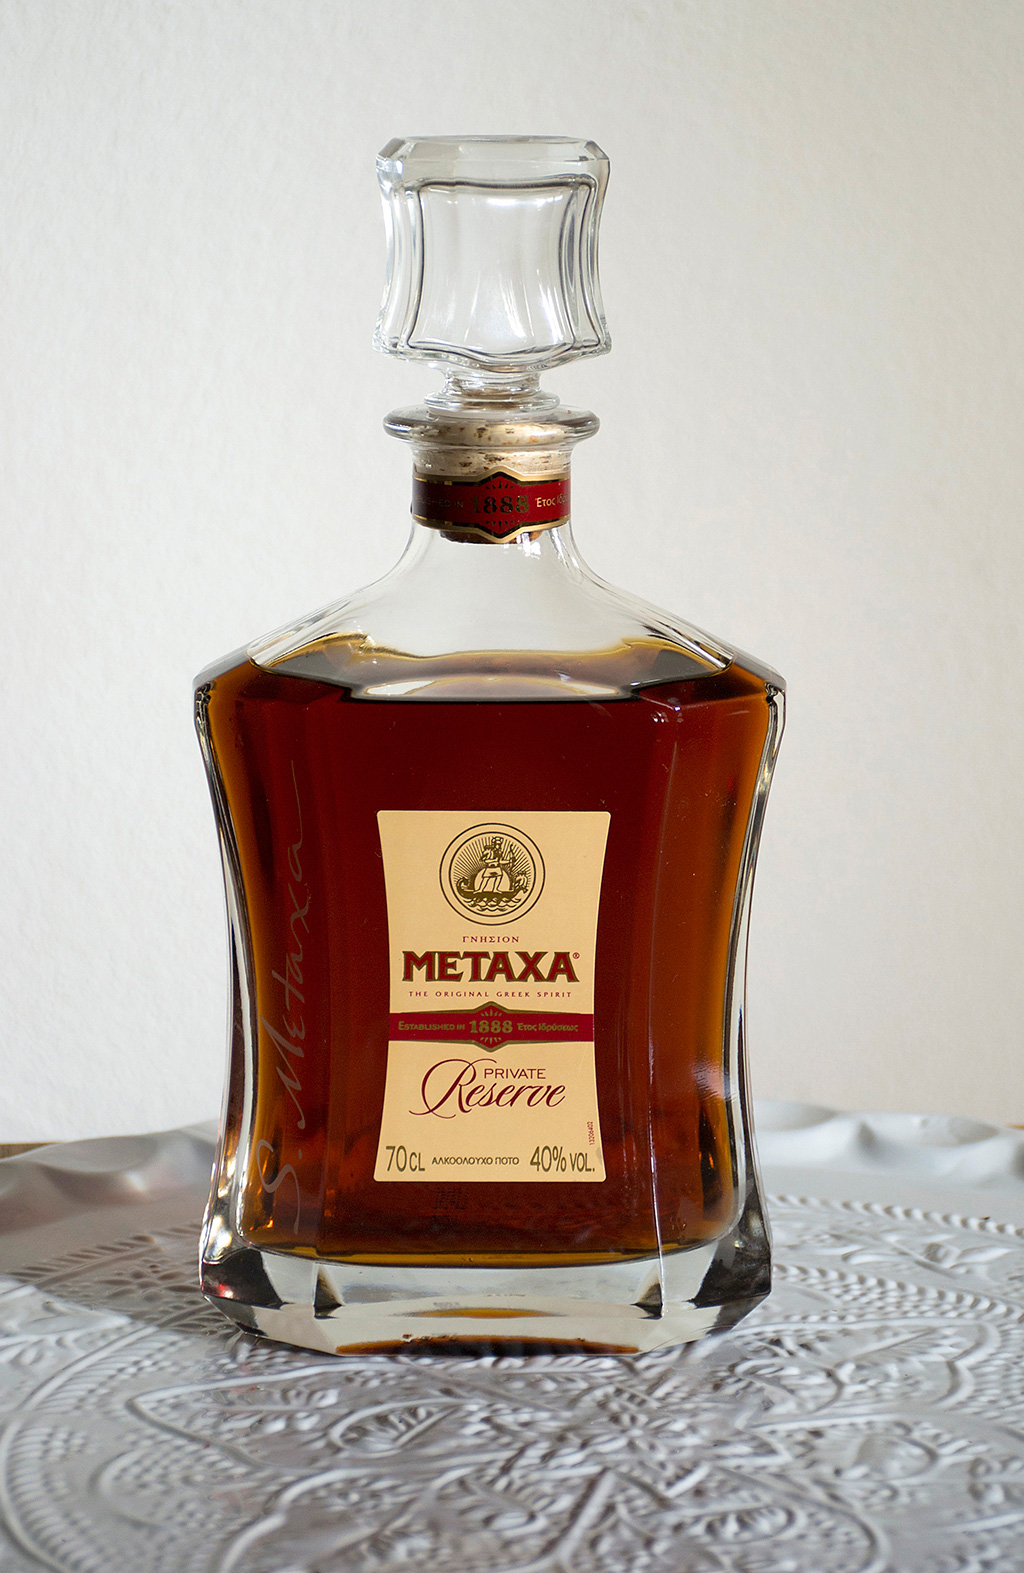 The-Greek-cognac-metaxa